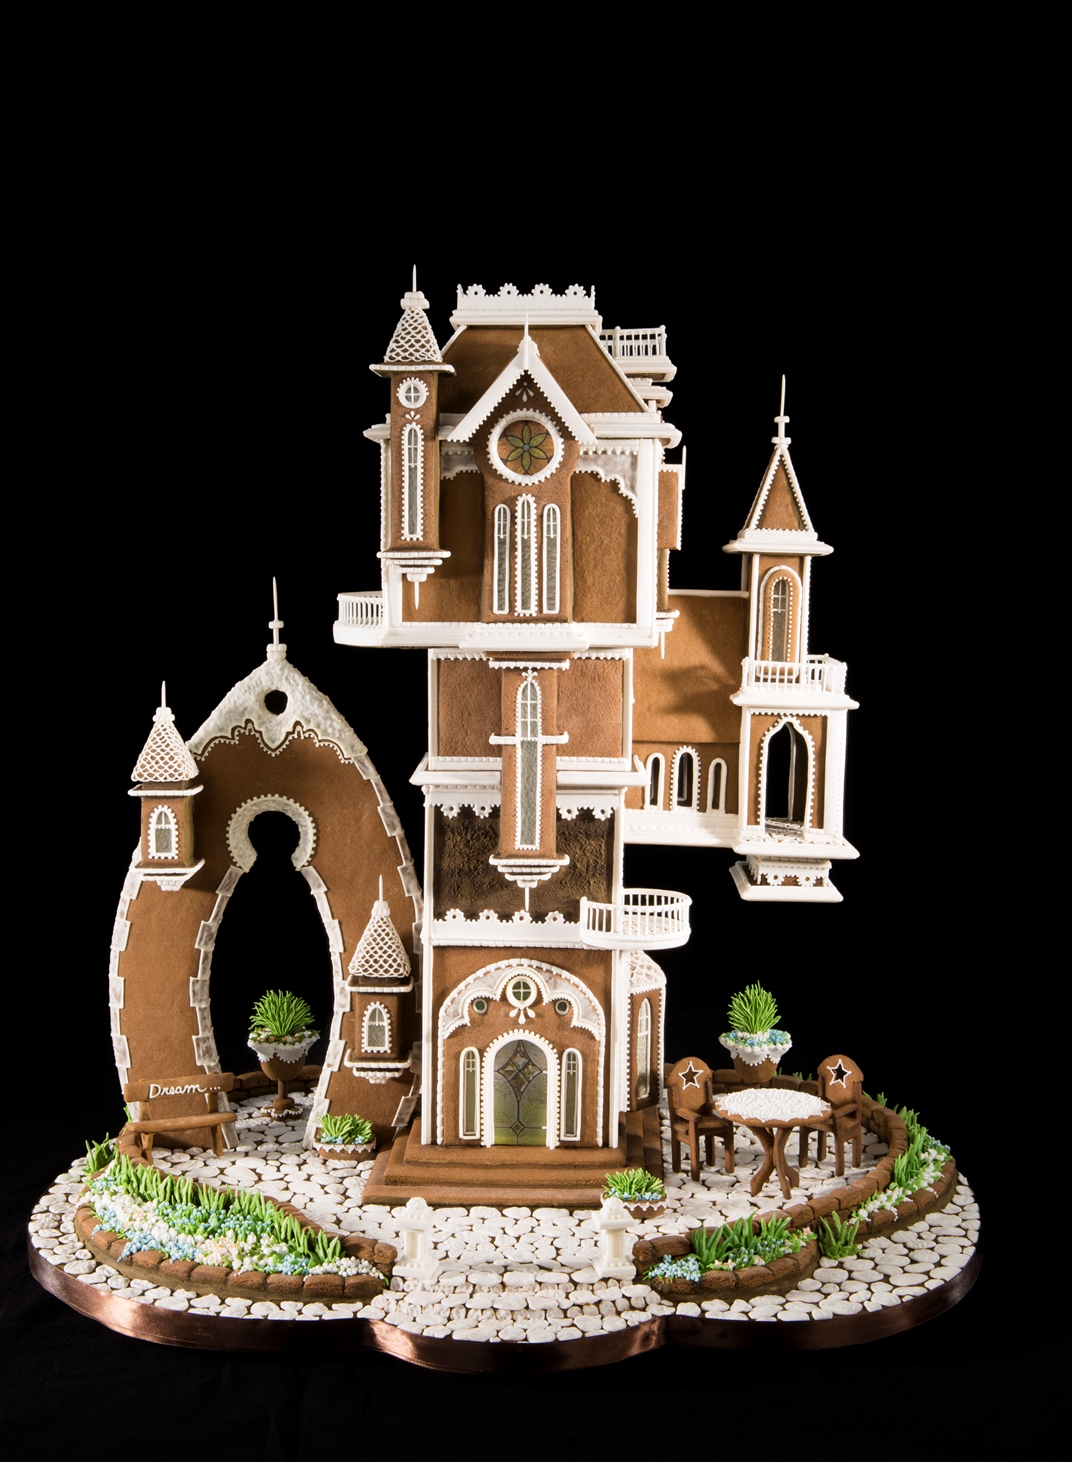 2018 Gingerbread Competition Winner